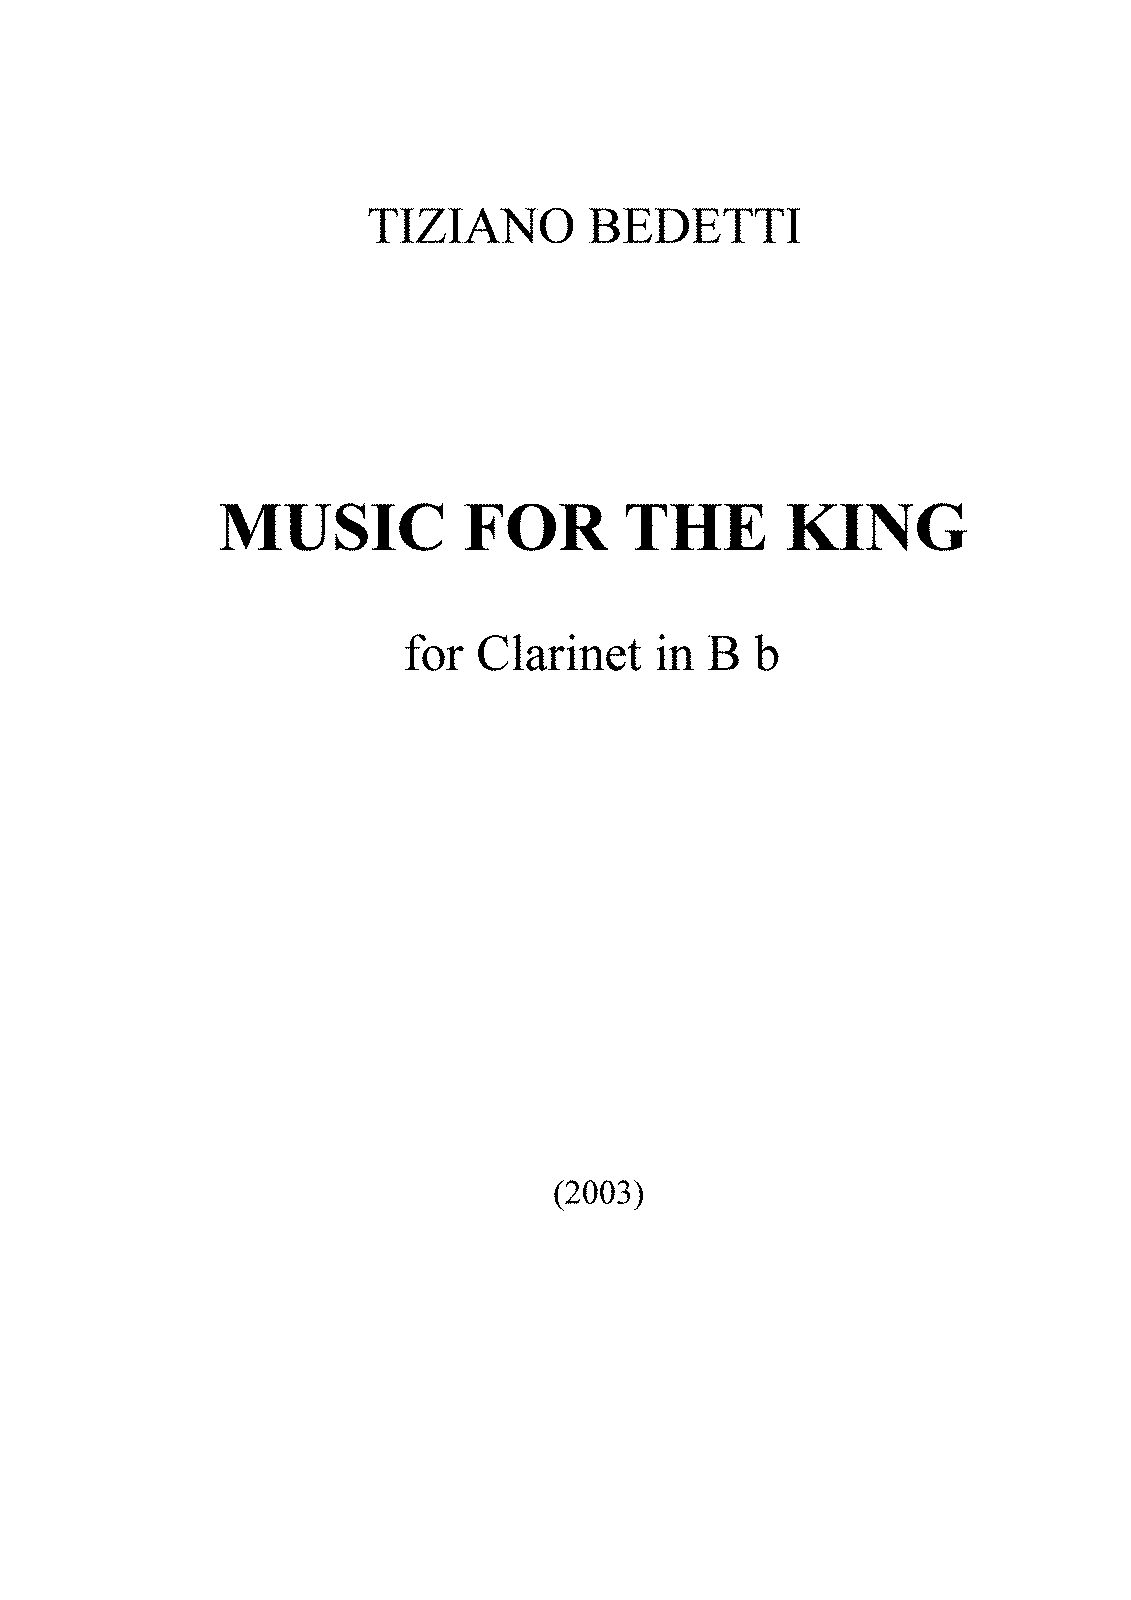 PMLP207538-Music-for-The-King-for-Clarinet.pdf